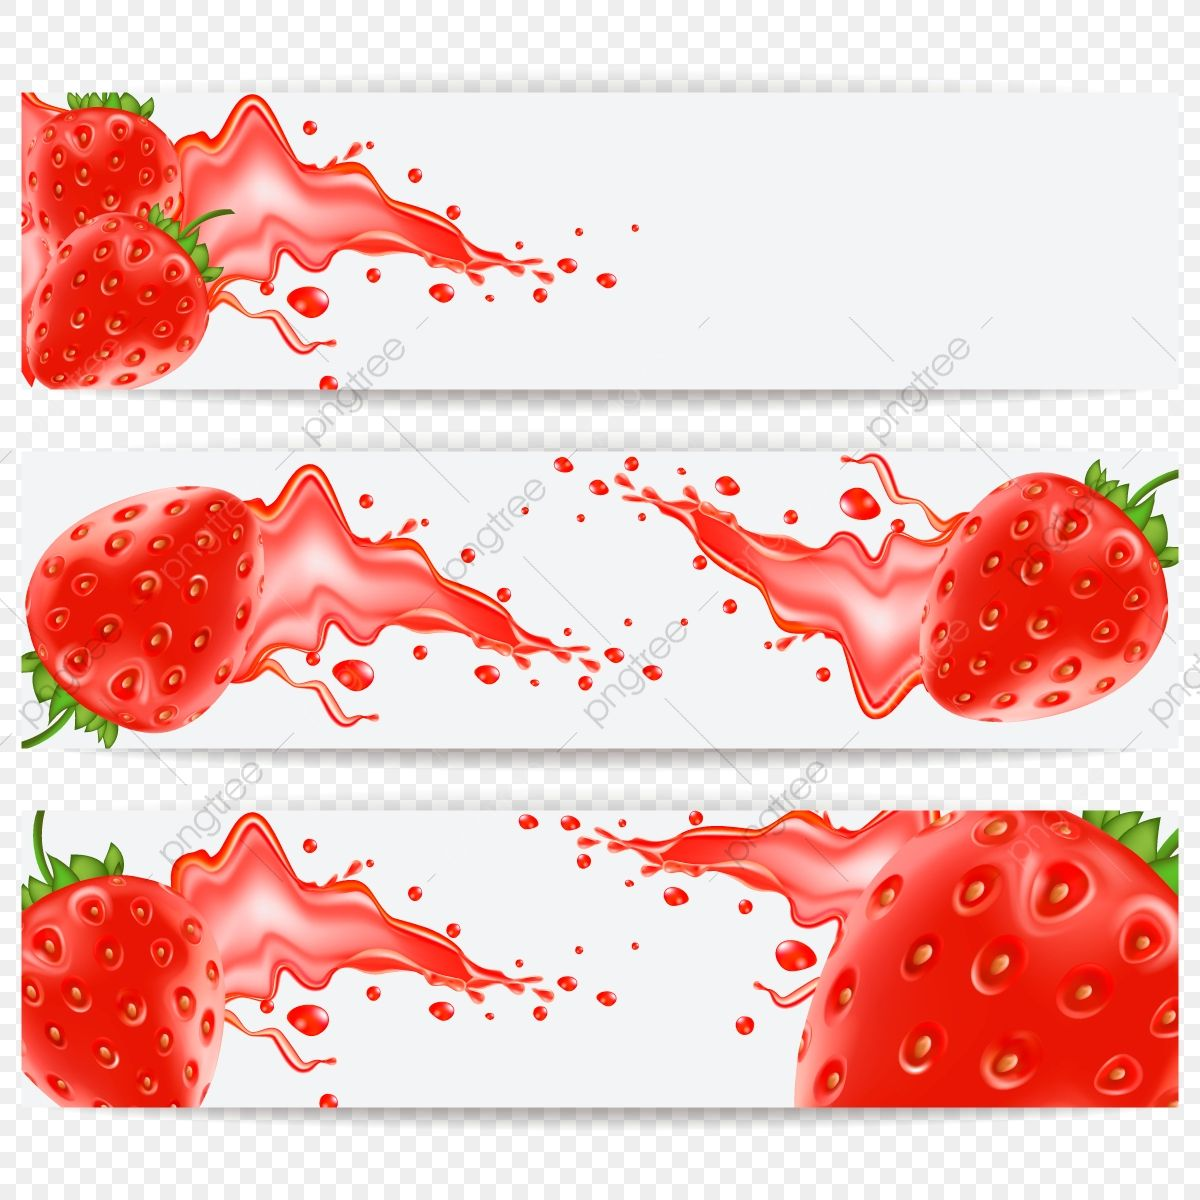 Cards With Realistic Strawberries And A Splash Of Juice Strawberry Splash Fruit Png And Vector With Transparent Background For Free Download In 2021 Cocktails Vector Fruit Vector Graphic Design Cards